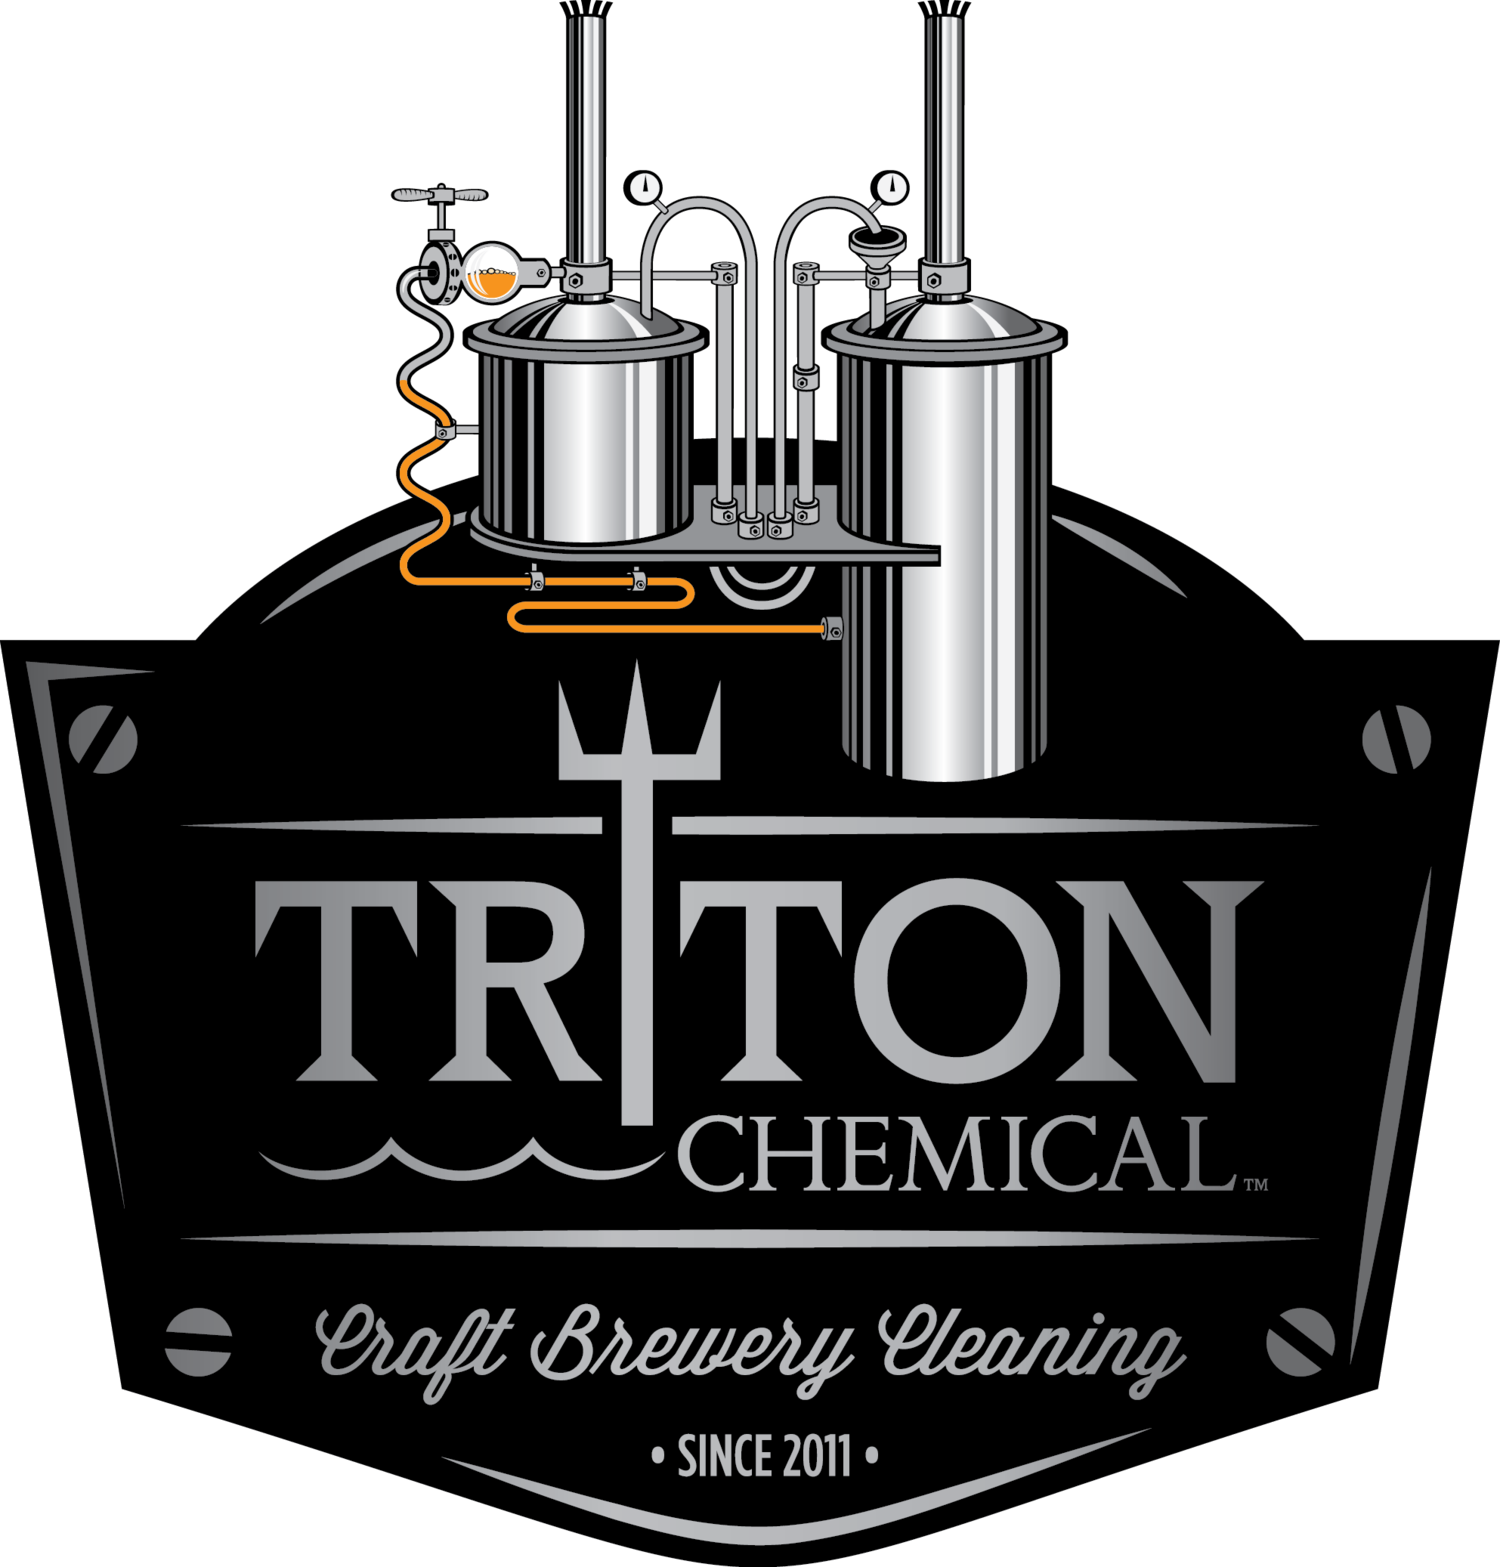 Triton Chemical Craft Brewery Cleaning